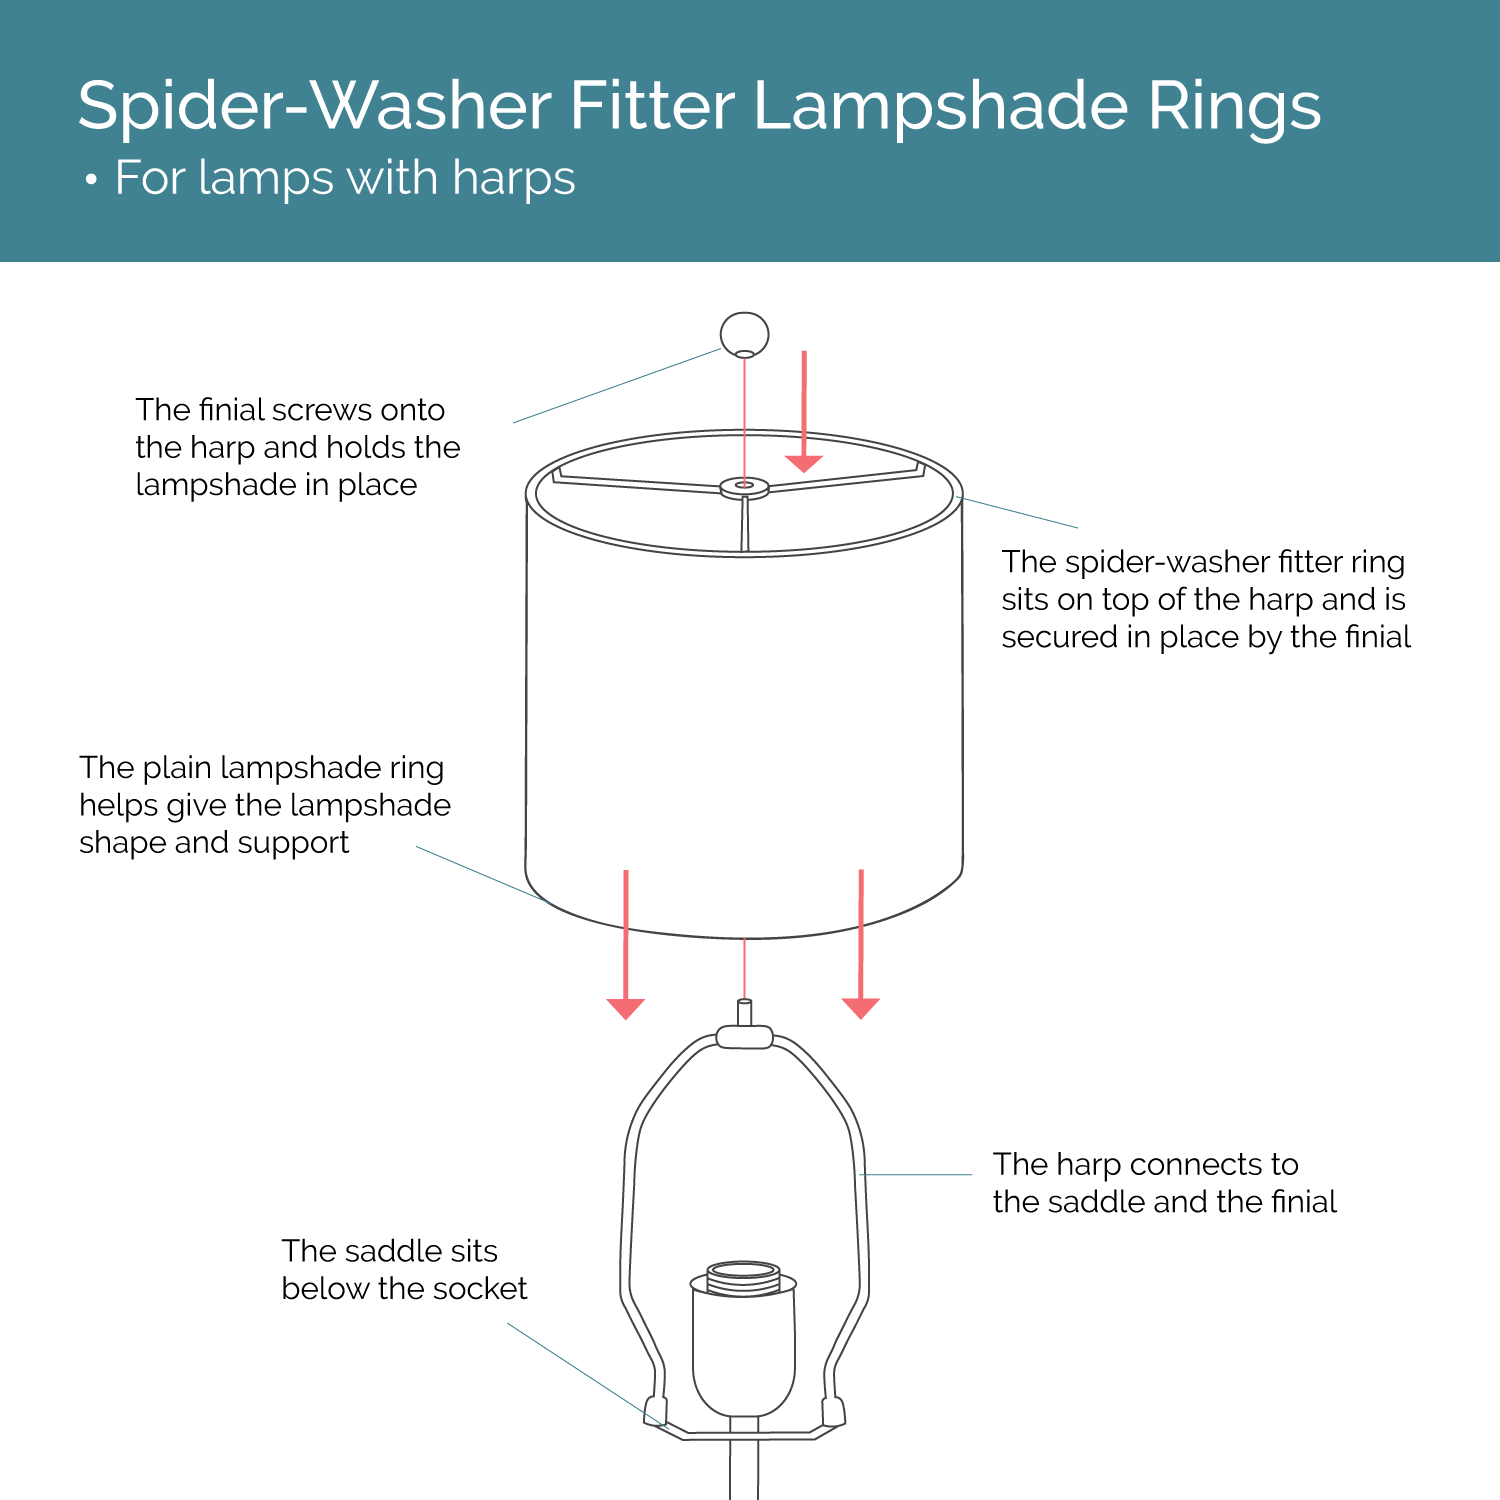 Spiderwasher fitter lampshade ring set washer spider and wire how to make a lampshade using spiderwasher fitter lampshade rings via i like that greentooth Images